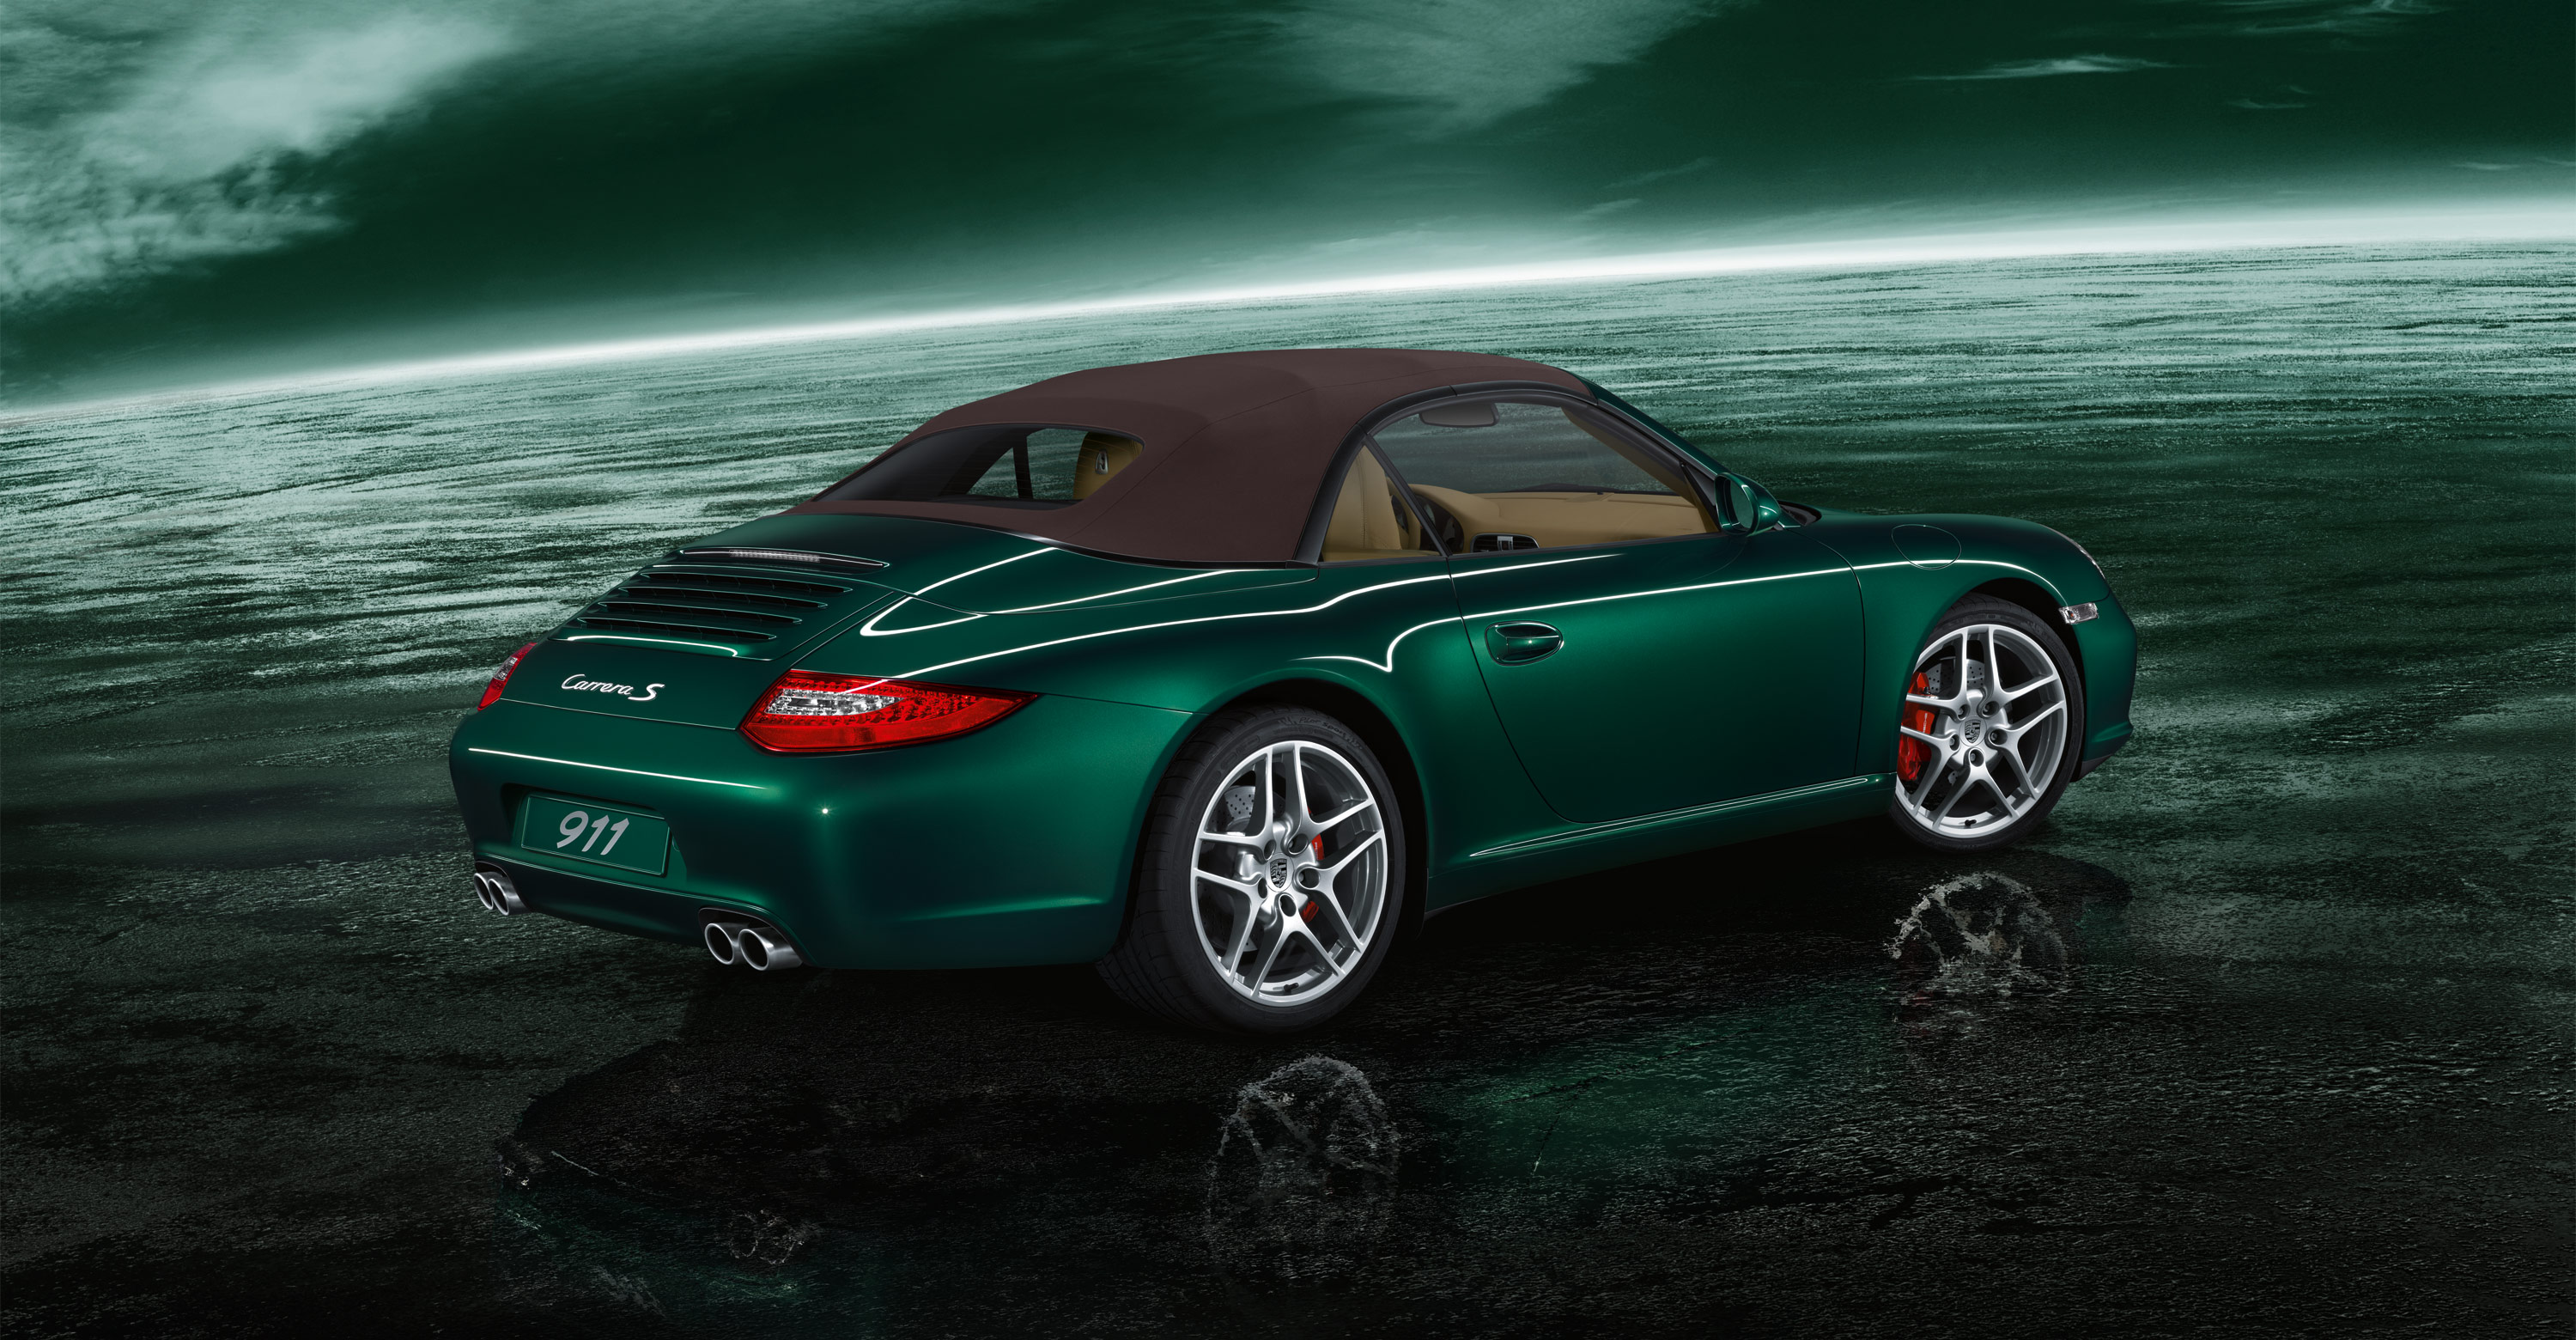 2011 Green Porsche 911 Carrera S Cabriolet Wallpapers